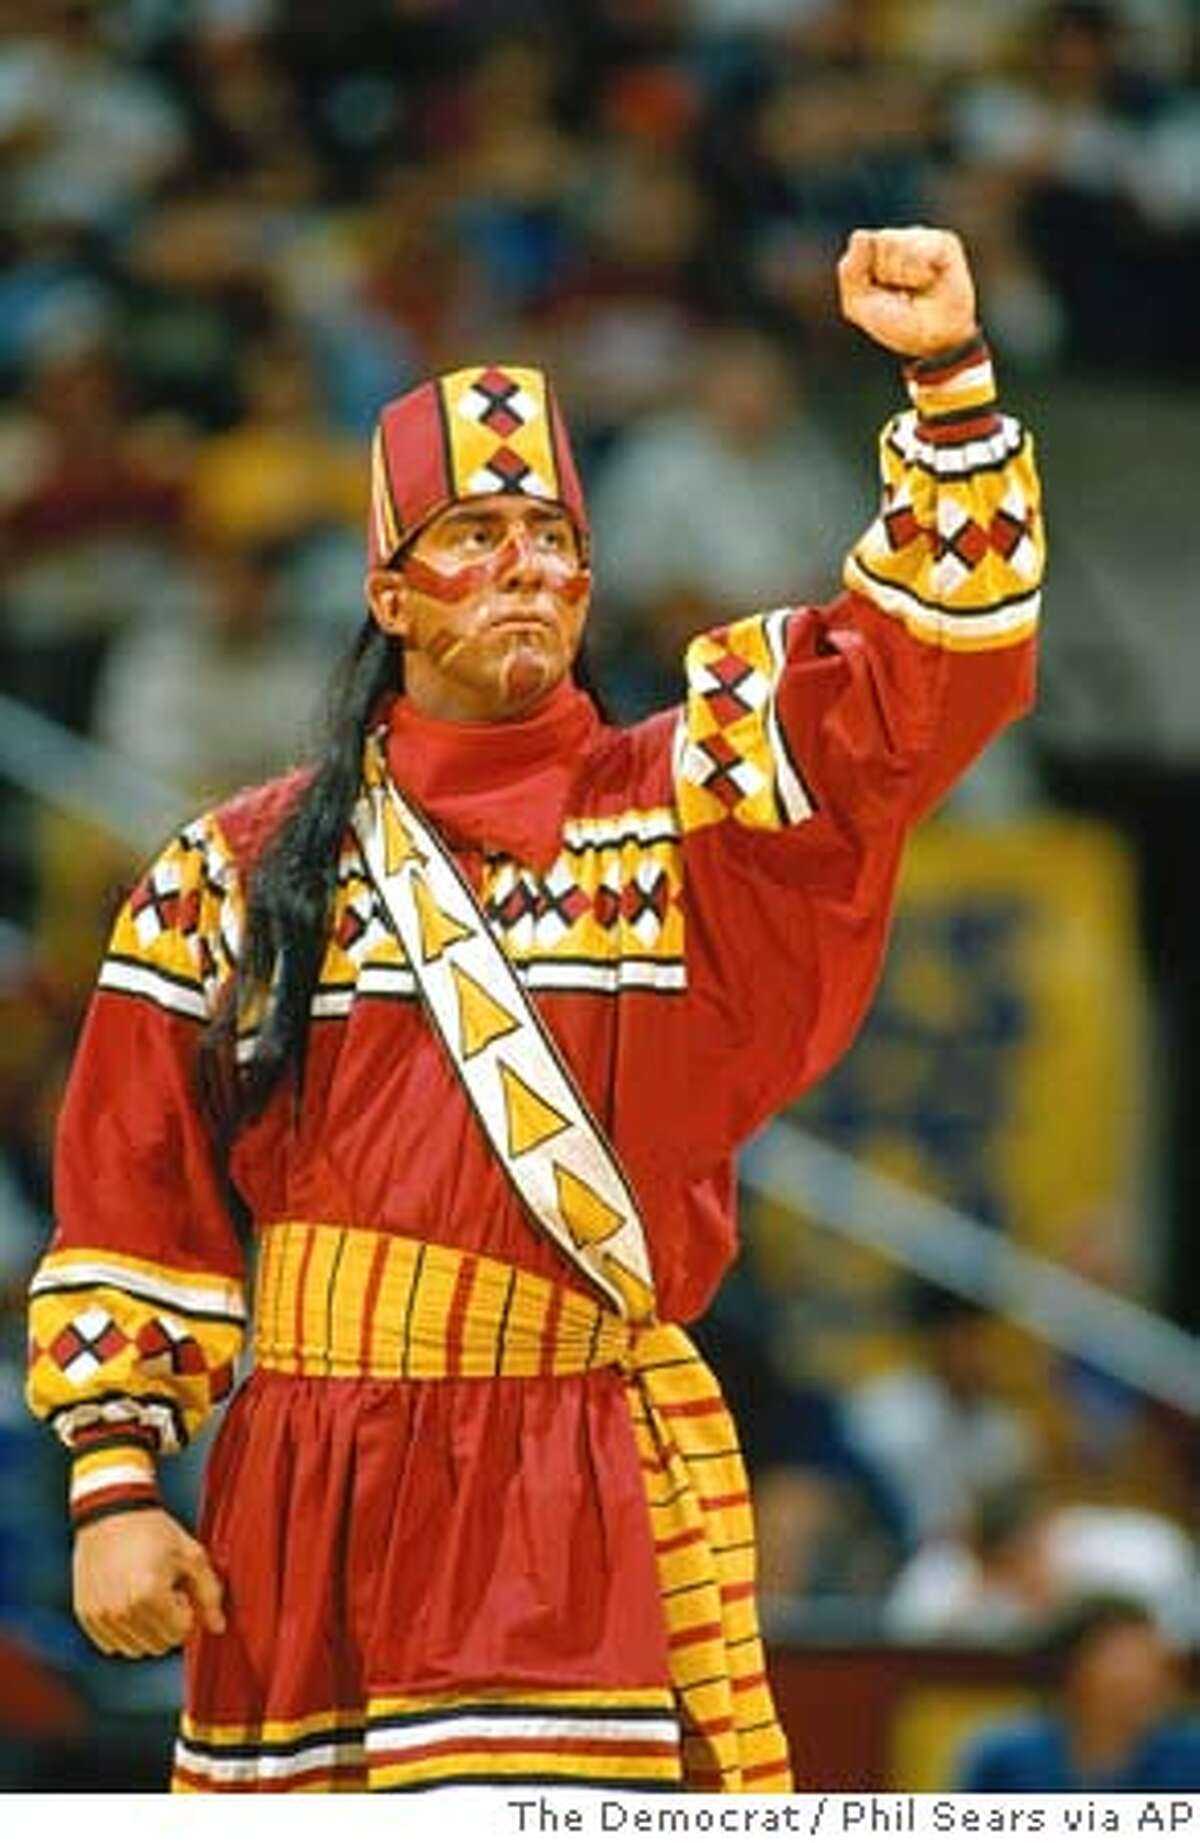 This undated photo shows Florida State mascot Chief Osceola at a basketball game in Tallahassee, Fla. The NCAA banned the use of American Indian mascots by sports teams during its postseason tournaments, but will not prohibit them otherwise. At least 18 schools have mascots the NCAA deem ``hostile or abusive,'' including Florida State's Seminole and Illinois' Illini. Florida State President T.K. Wetherell threatened to take legal action after the ruling. (AP Photo/The Democrat, Phil Sears) UNDATED PHOTO